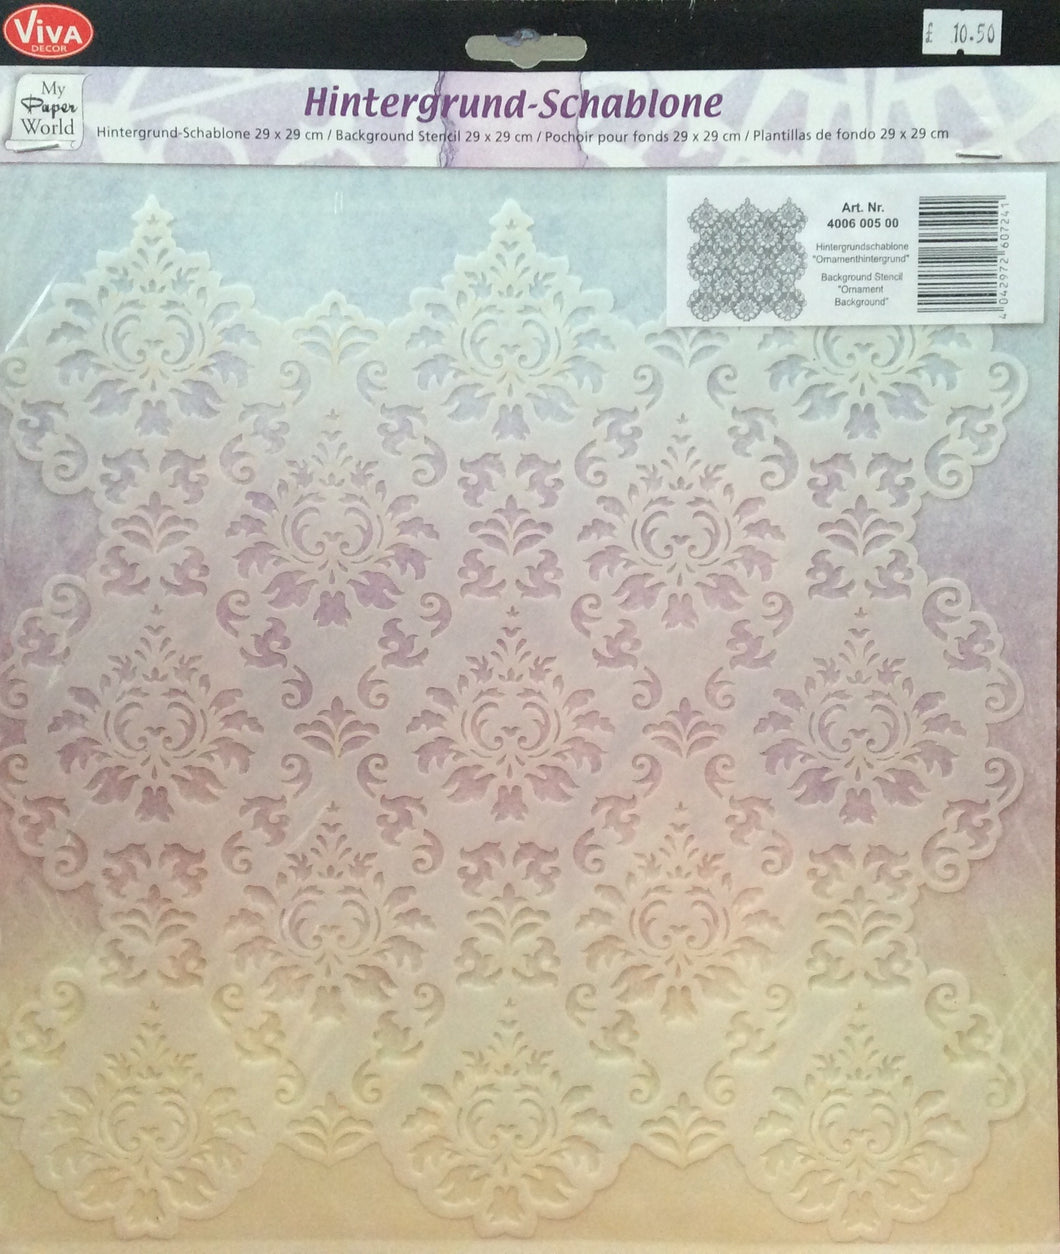 Viva Decor My Paper World Hintergrund - Schablone - Background Stencil Ornament 29cm x 29cm